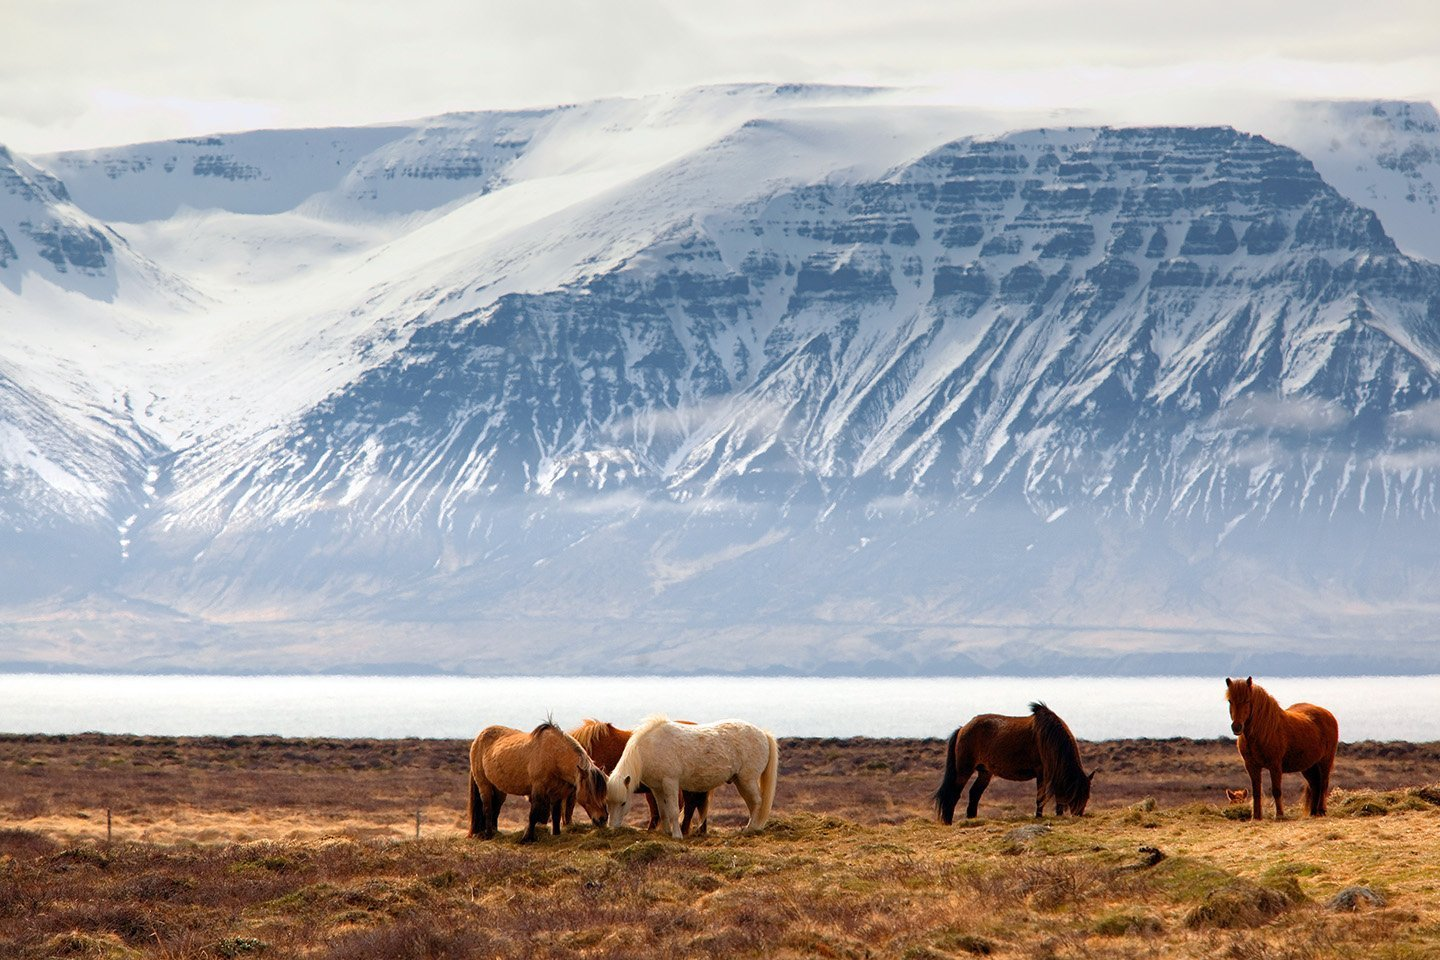 5 Icelandic horses standing in grass with water and snowy mountains in background in Iceland